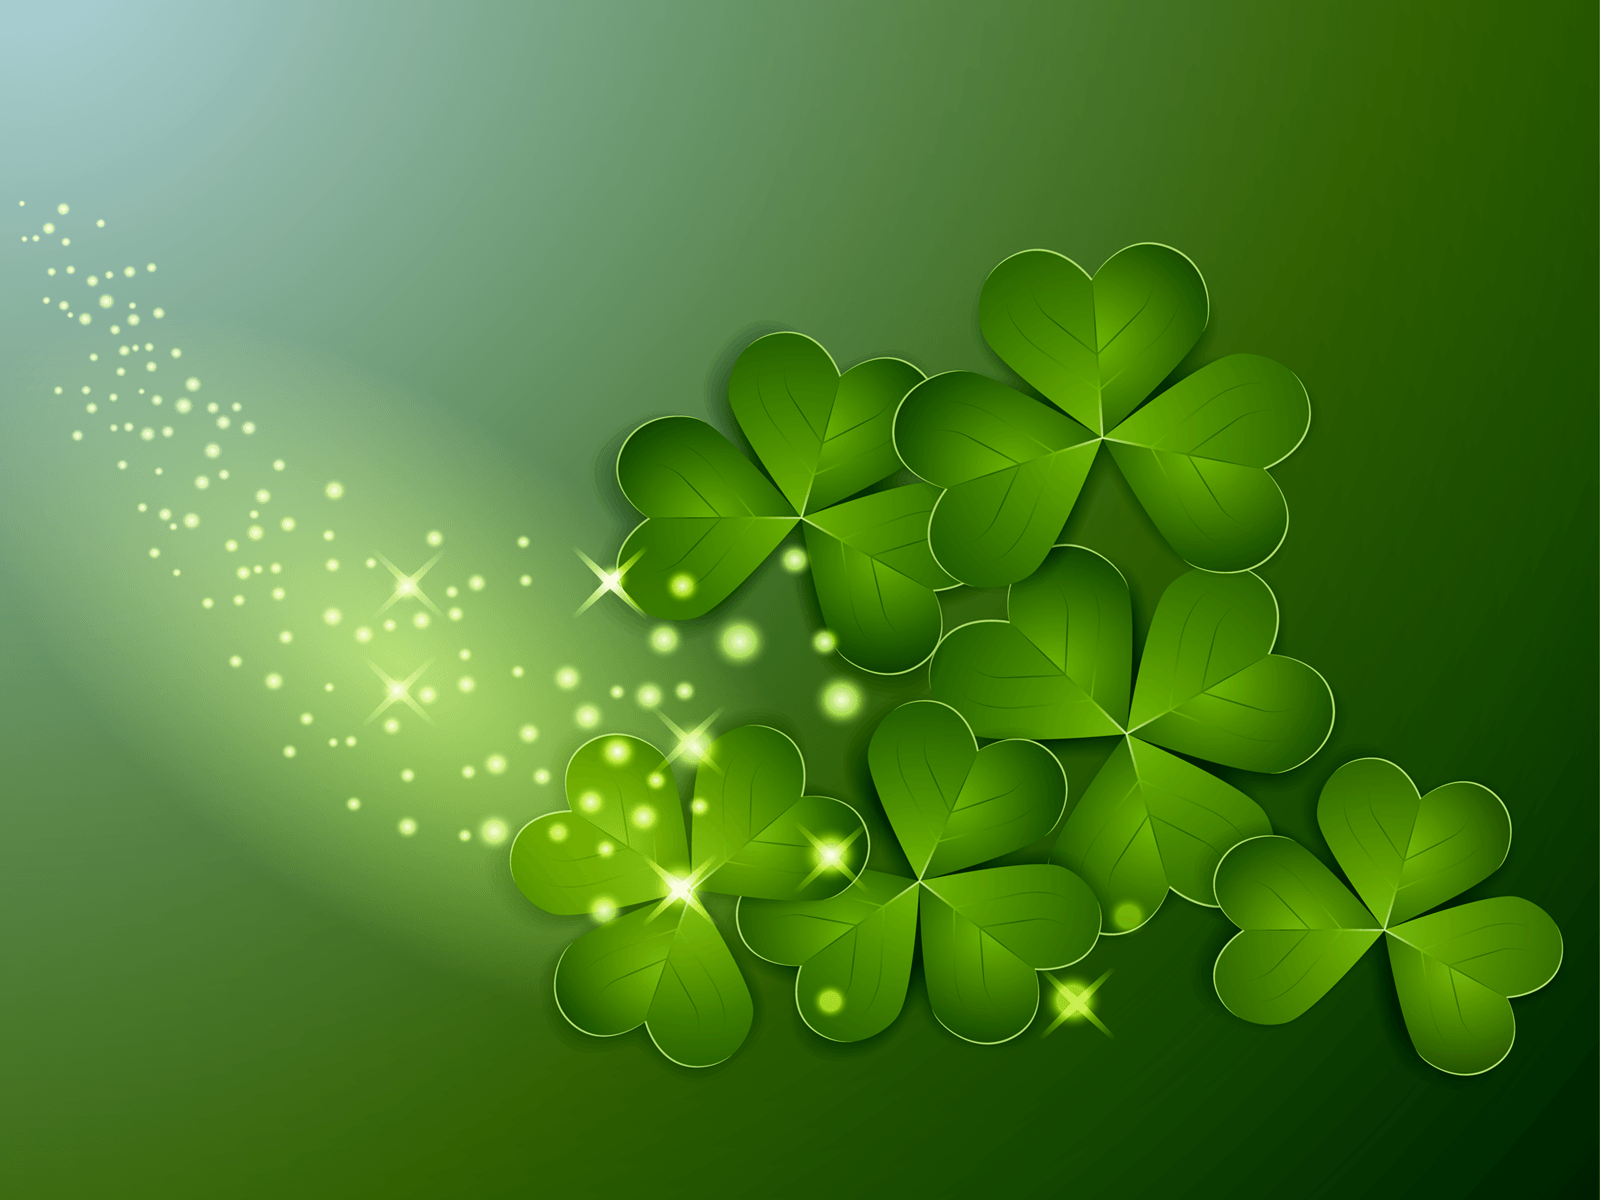 St Patricks Day Clover Wallpaper | Gallery Yopriceville - High ...